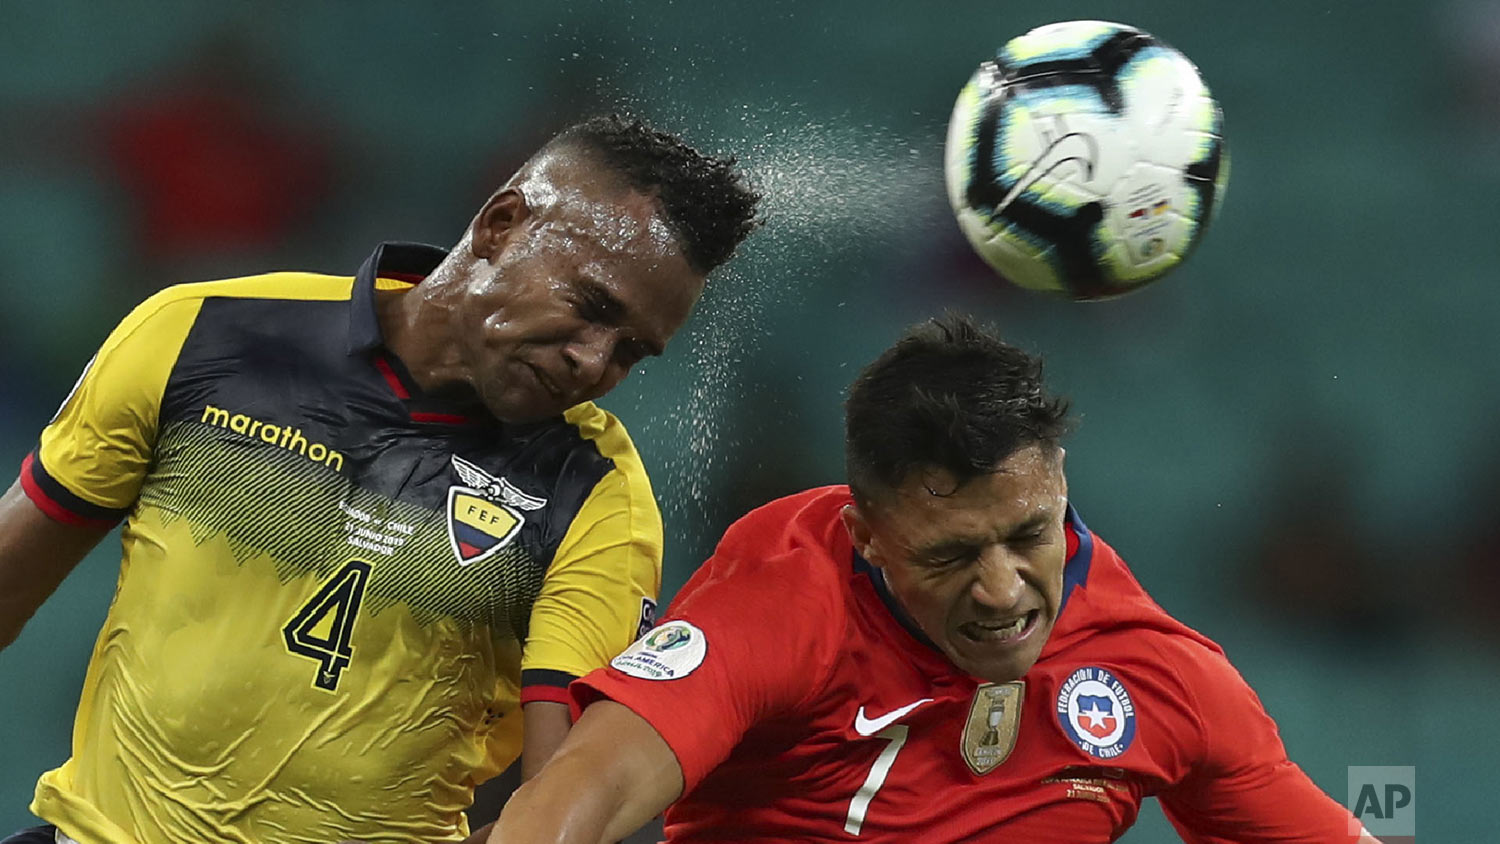 Ecuador's Pedro Velasco, left, and Chile's Alexis Sanchez go for a header during a Copa America Group C soccer match at  Arena Fonte Nova in Salvador , Brazil, Friday, June 21, 2019. (AP Photo/Natacha Pisarenko)